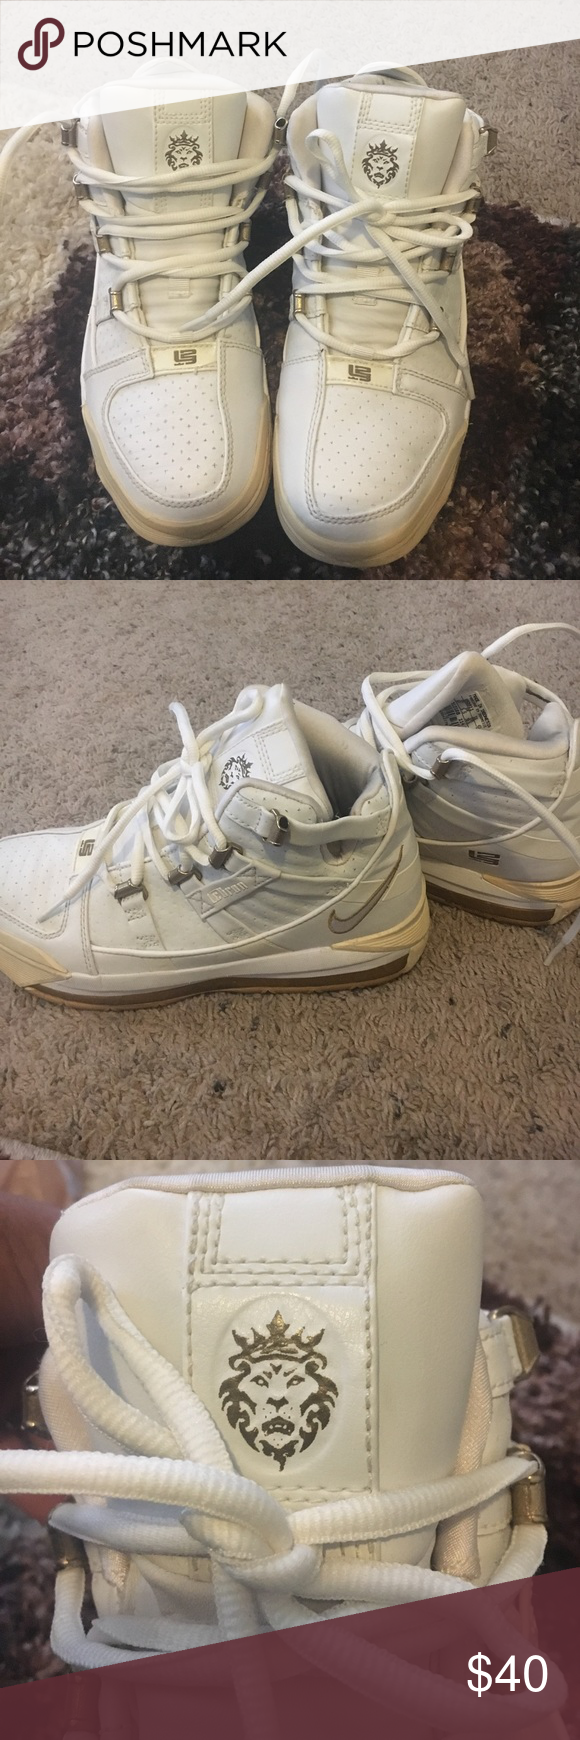 Lebron James sneakers All white. Super comfy. Downsizing my closet and never wear these anymore. Nike Shoes Sneakers